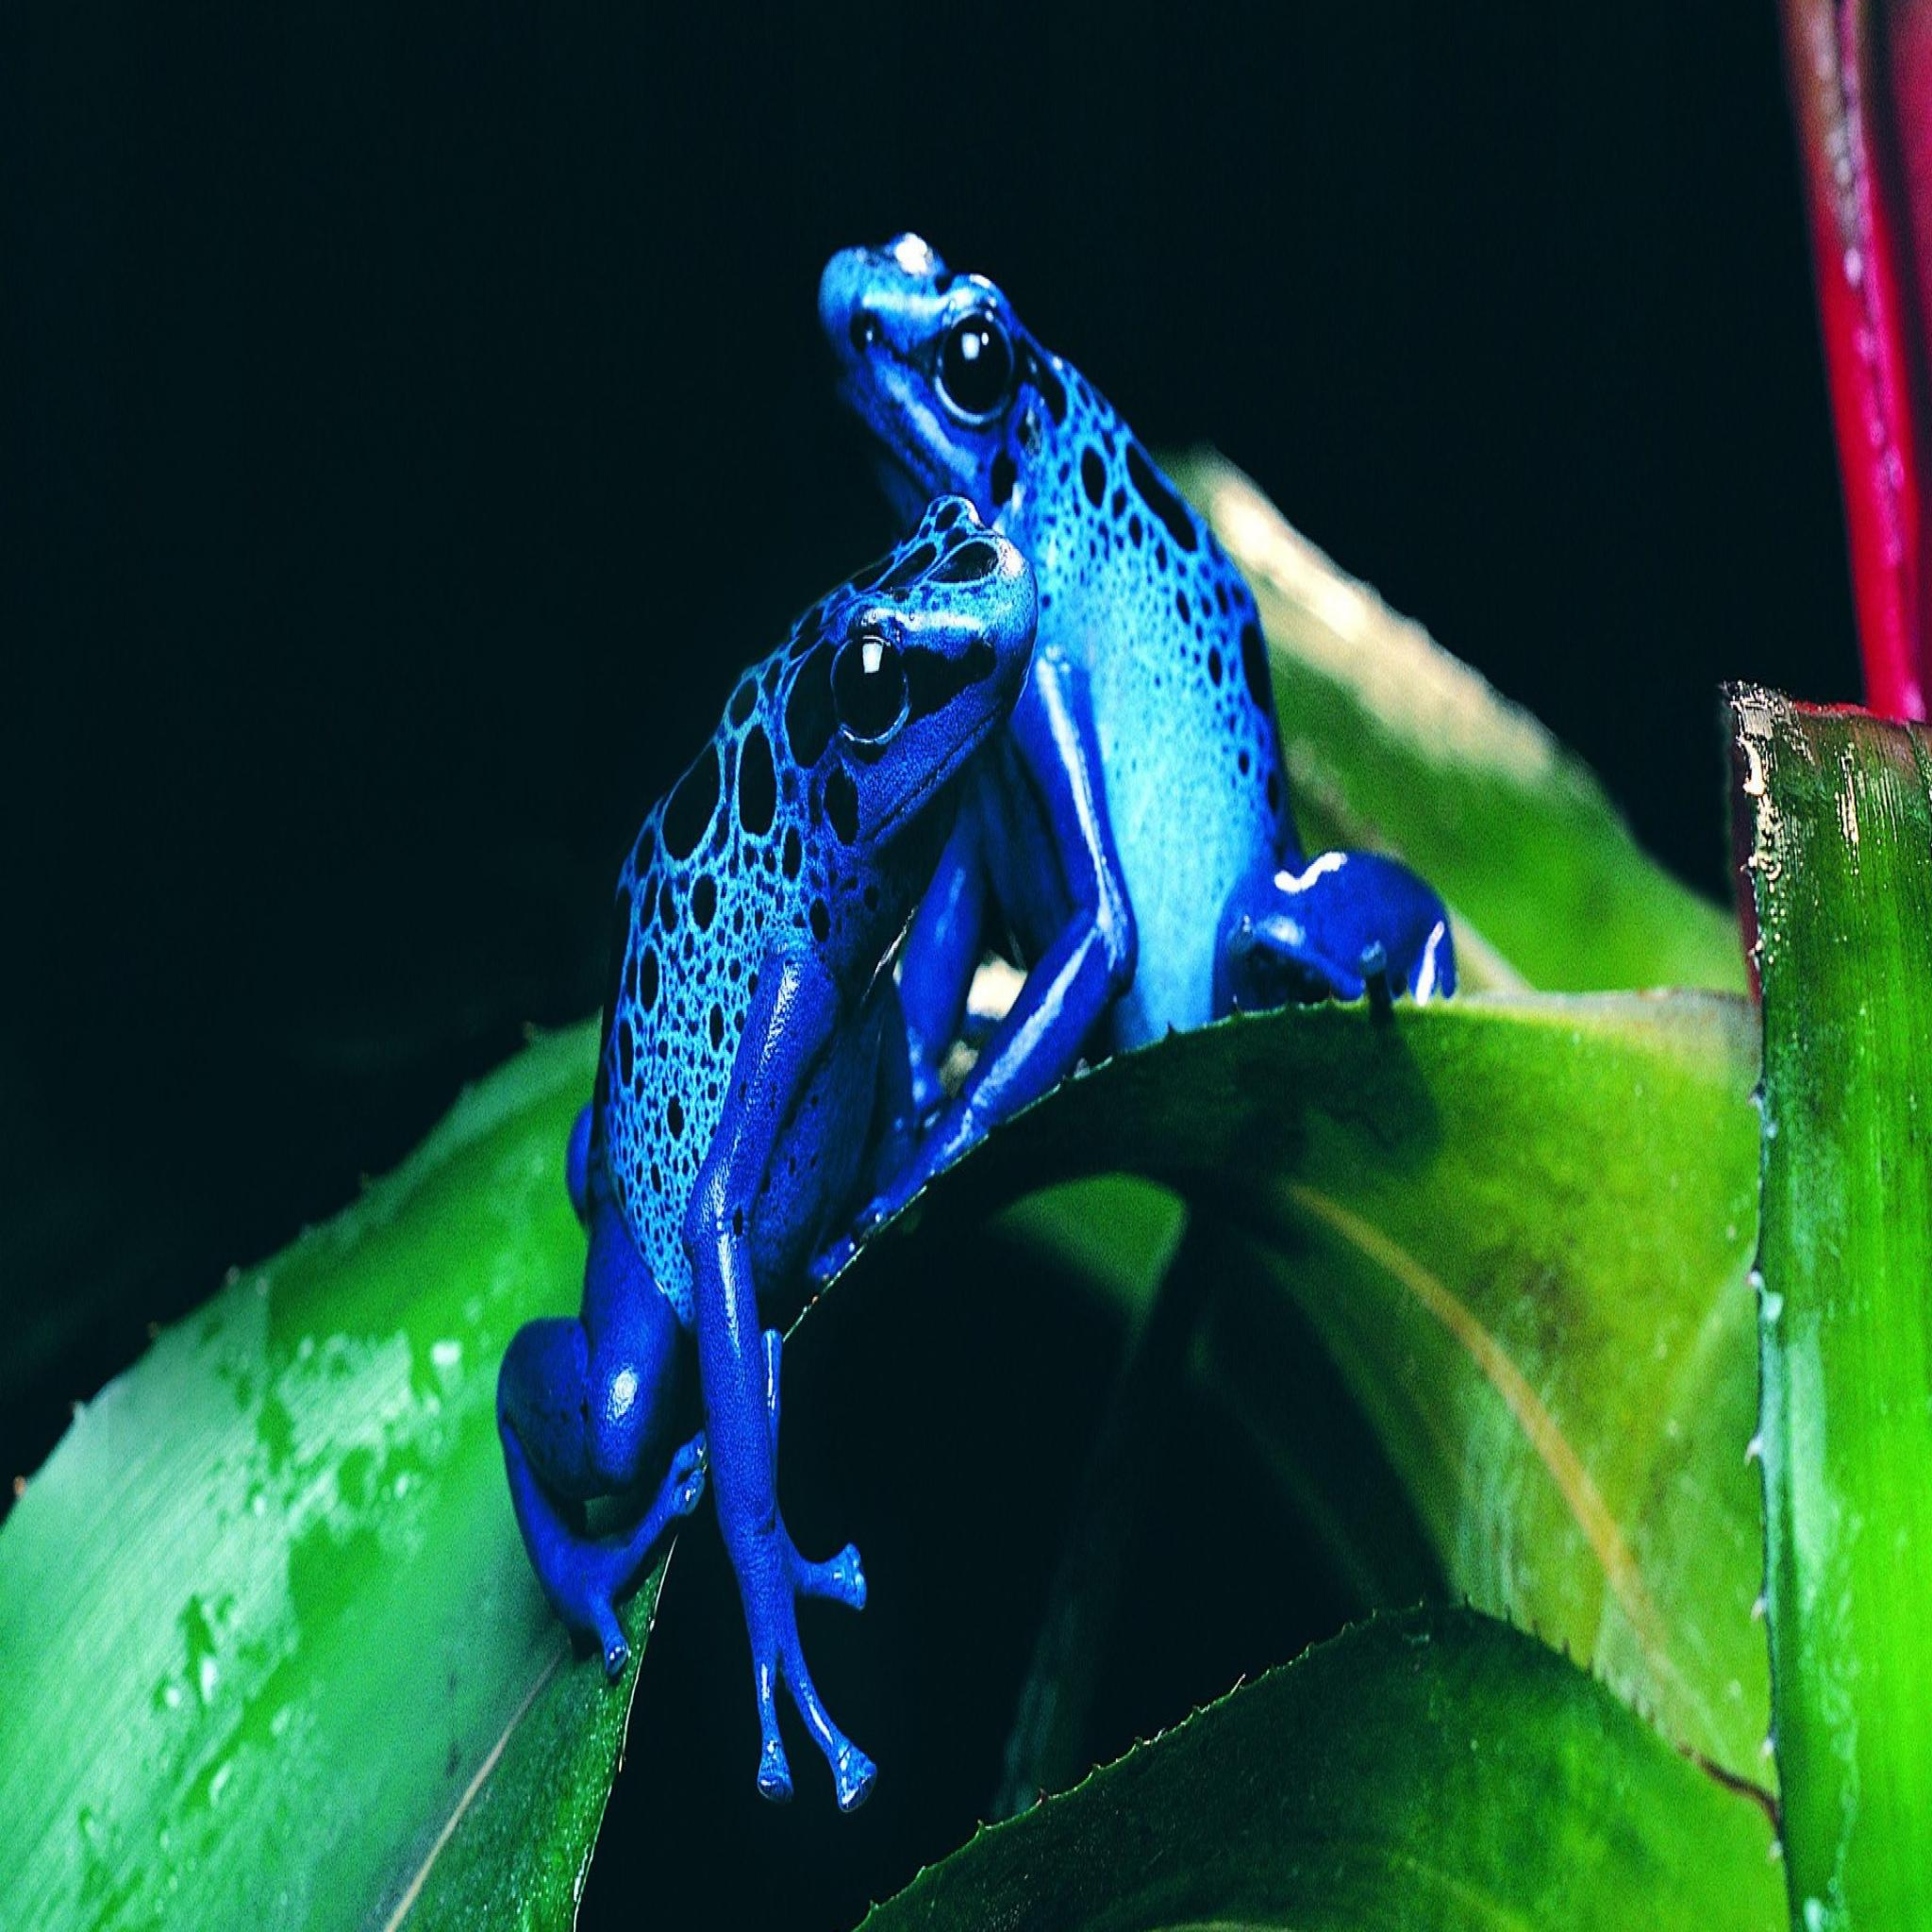 Frogs HD Wallpapers 2048x2048 Animal Wallpapers 2048x2048 Download 2048x2048